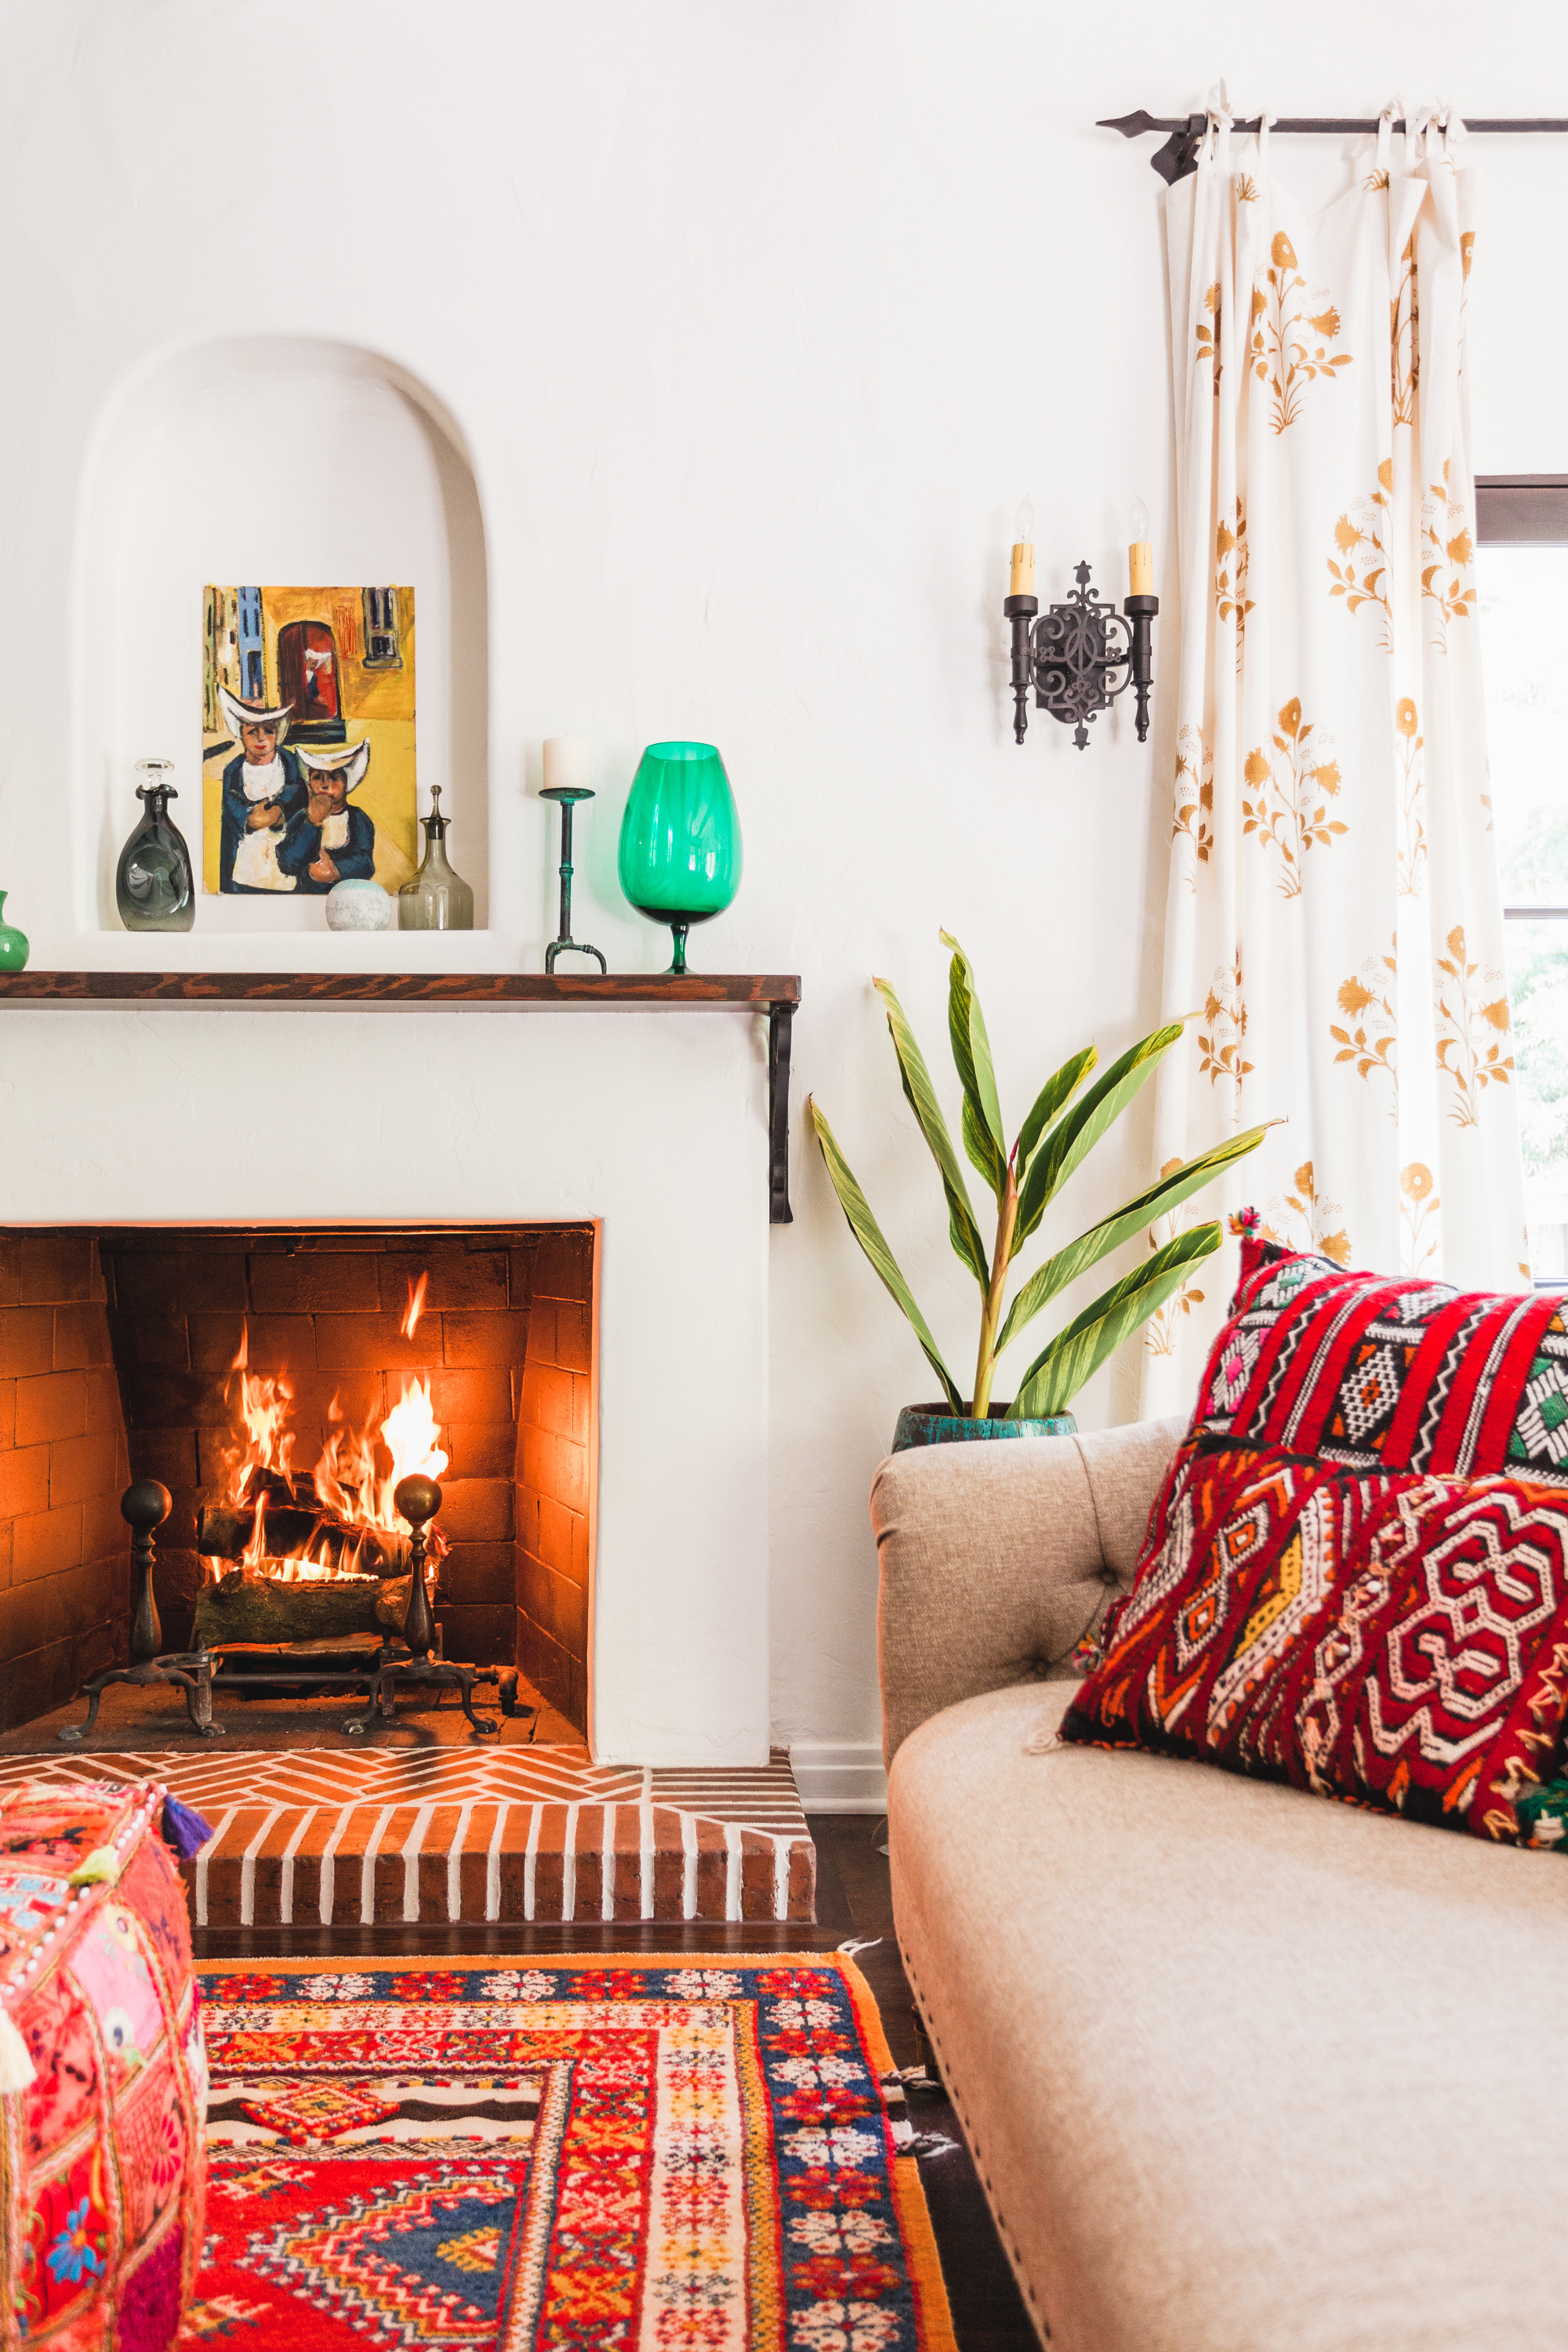 A coloful vignette near the fireplace is vivid and inviting. Oriana Koren for Lonny.